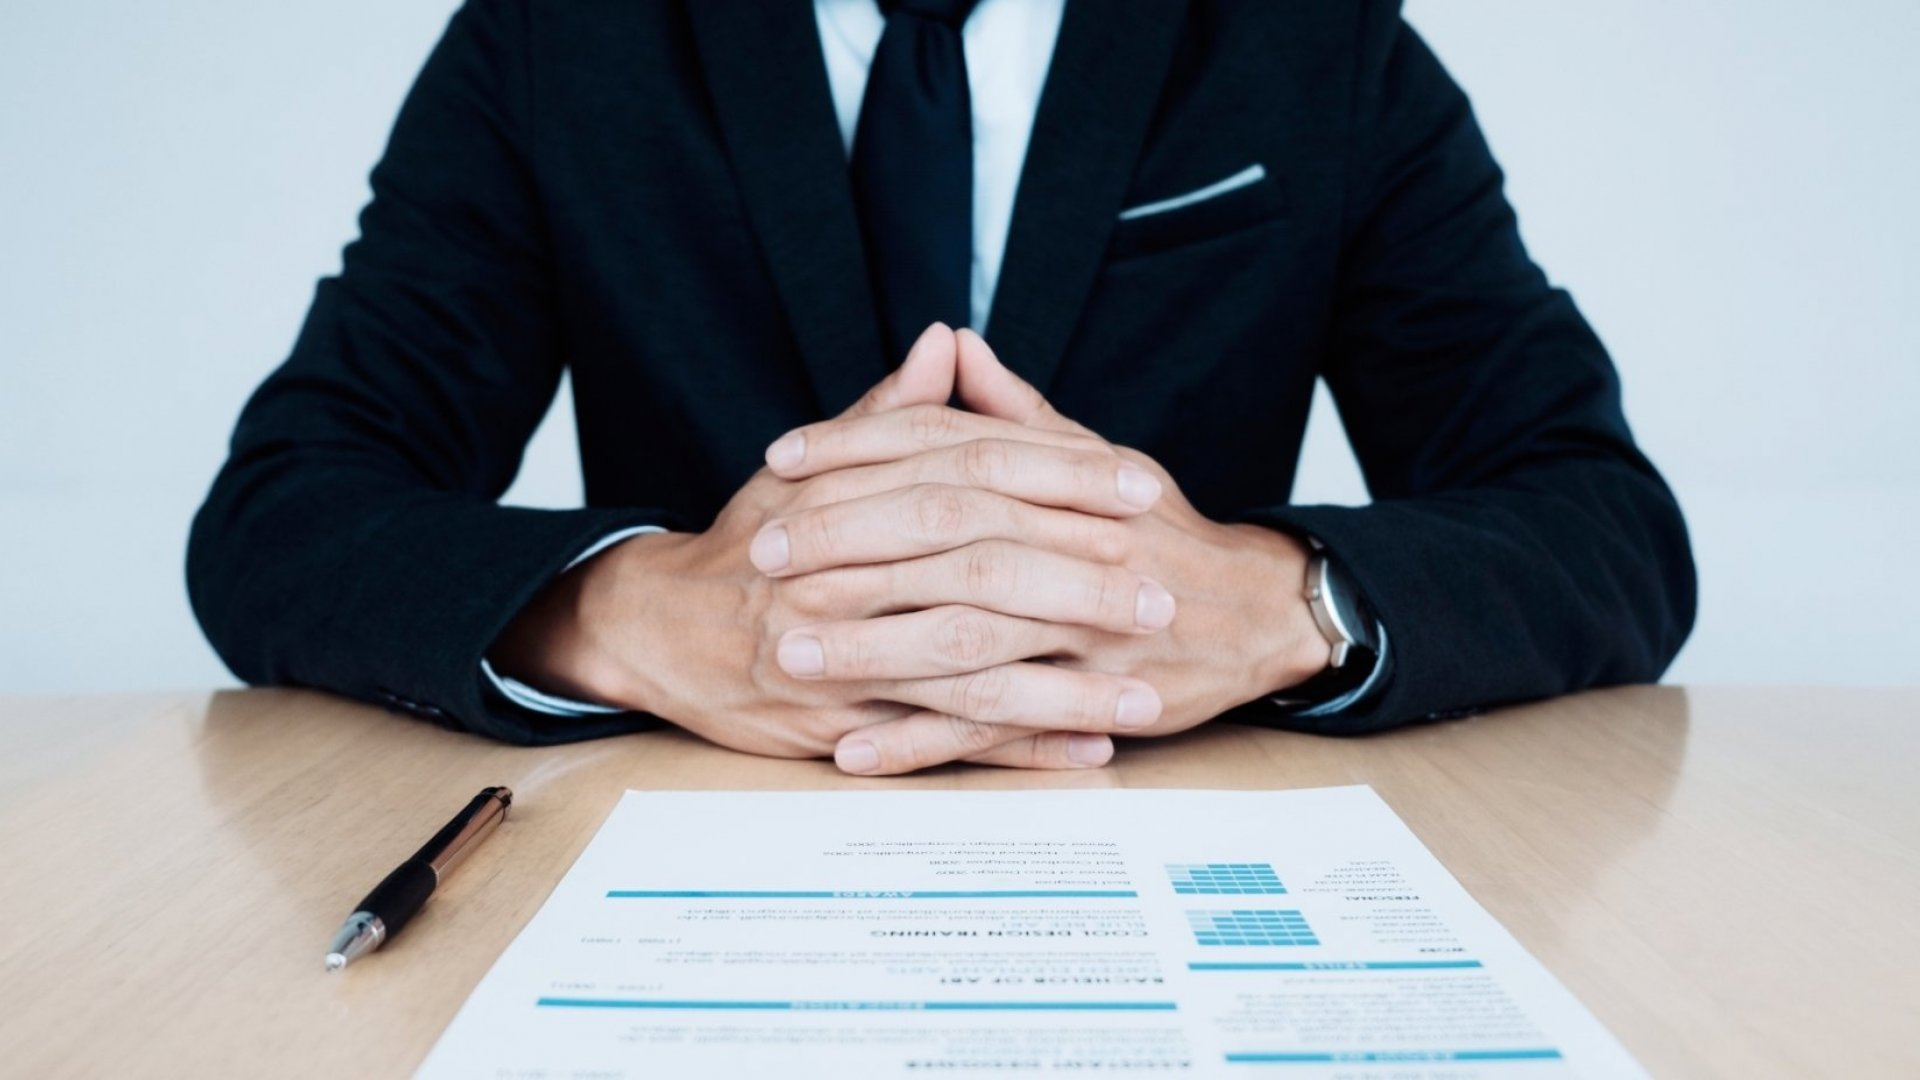 How to Prepare for a Great Job Interview